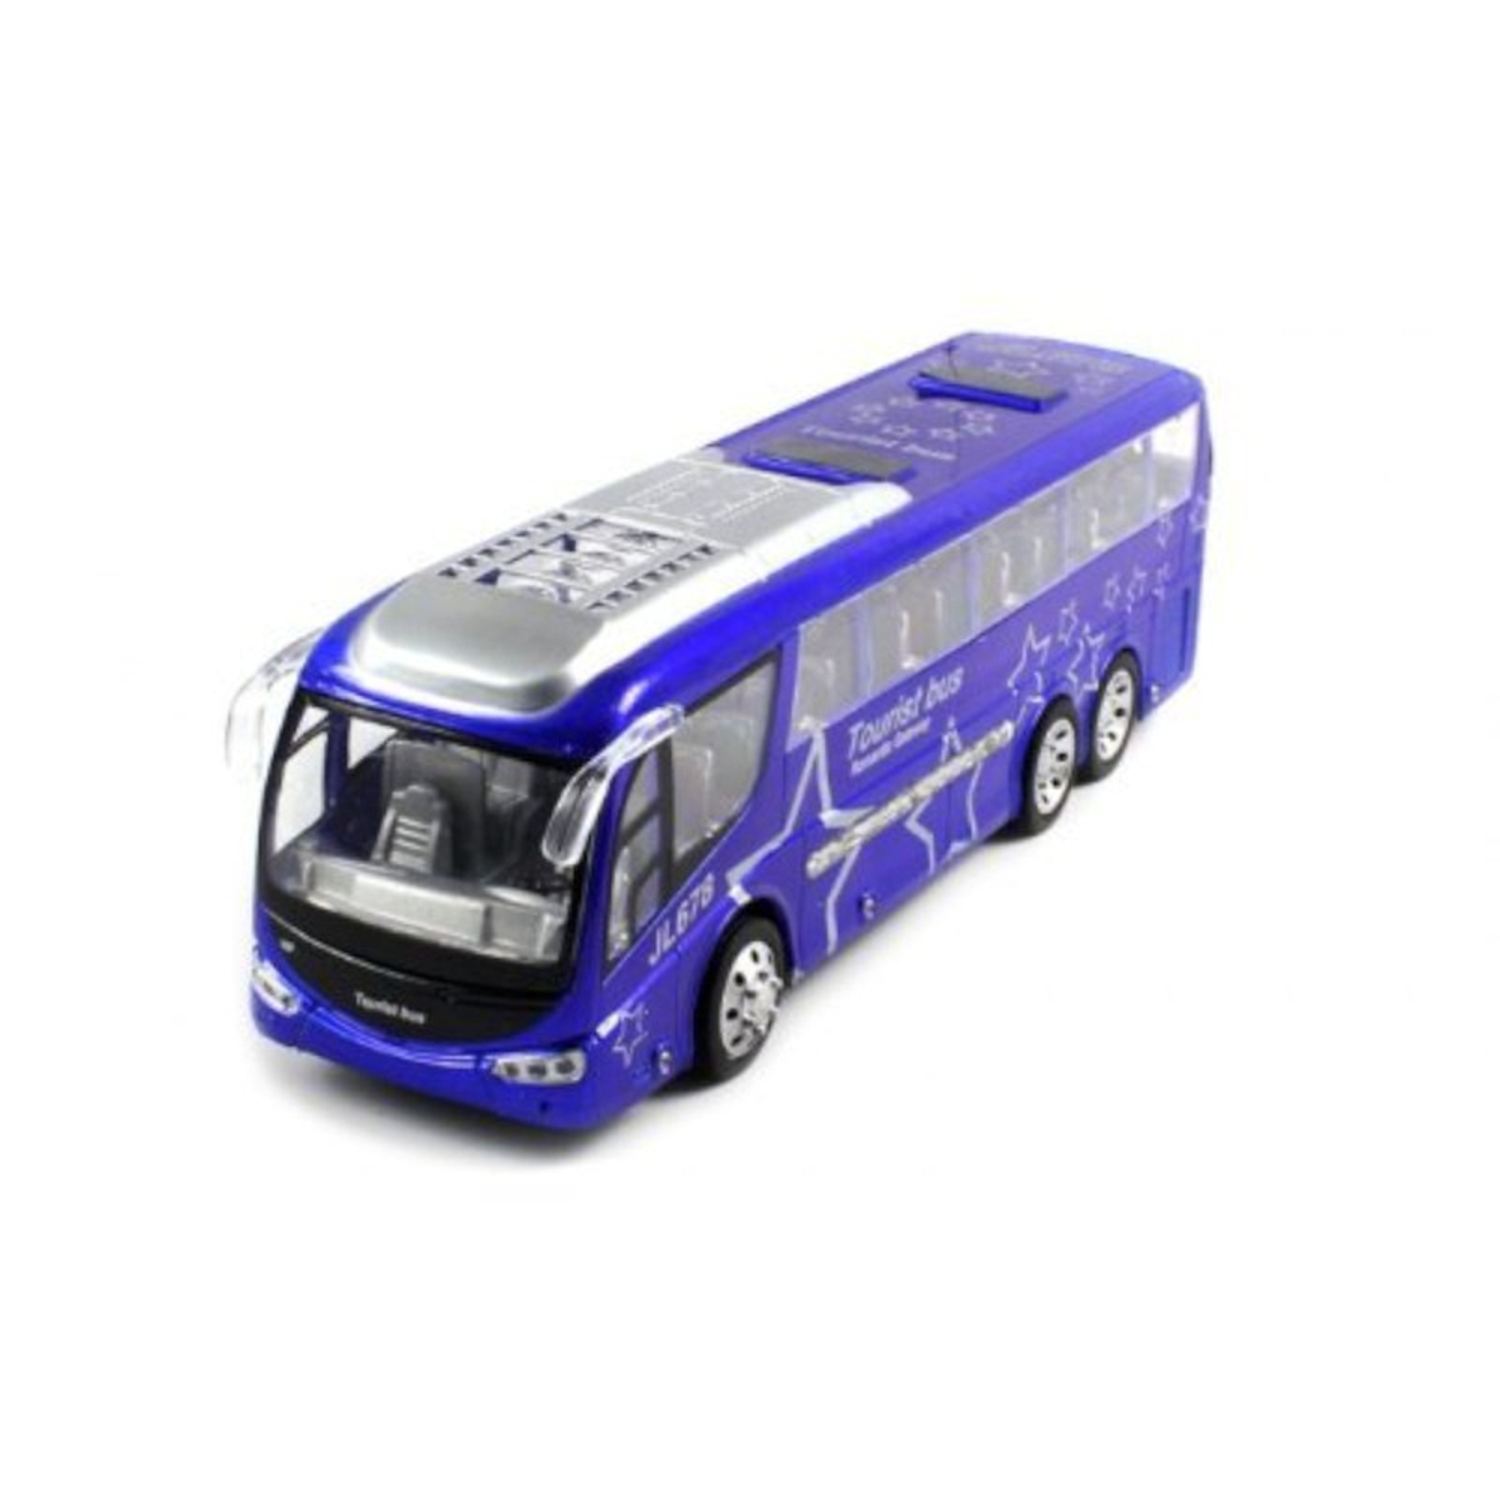 Ultimate Passenger Tourist Vacation Electric RC Bus Car 1:48 RTR Radio Control - Blue (Christmas Gift Idea)